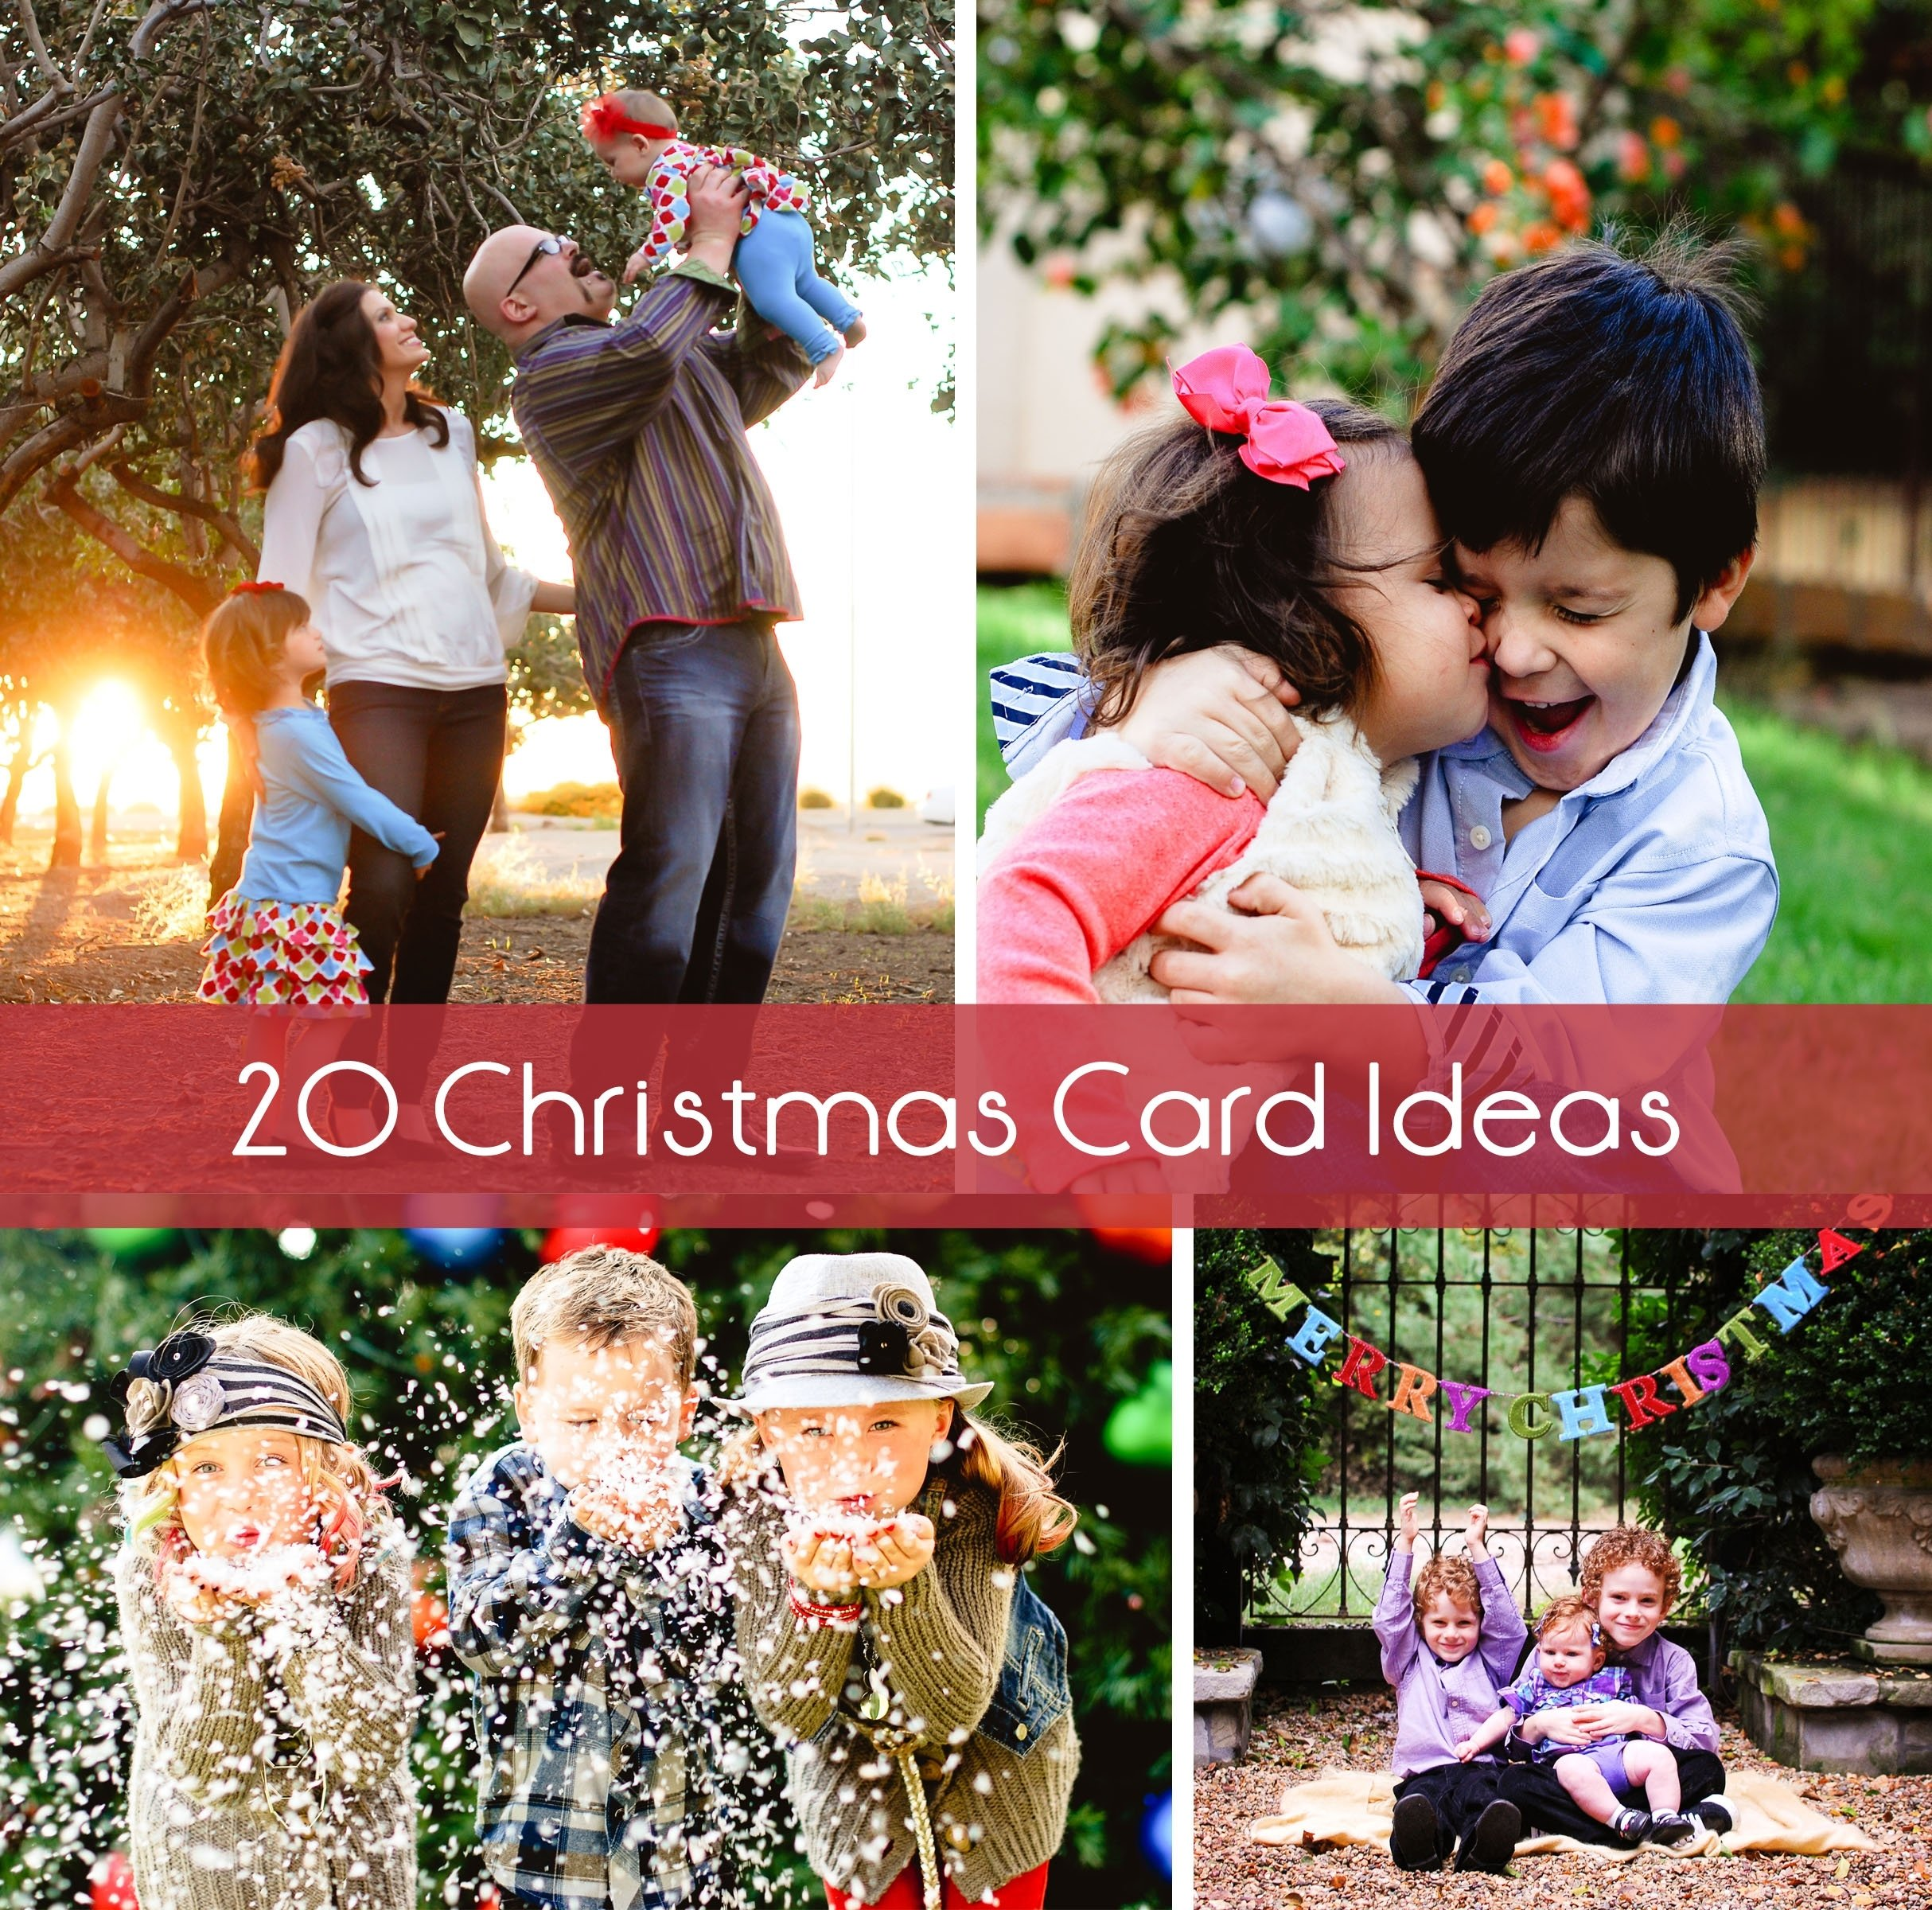 10 Unique Family Christmas Card Picture Ideas 20 christmas card ideas 2 2020